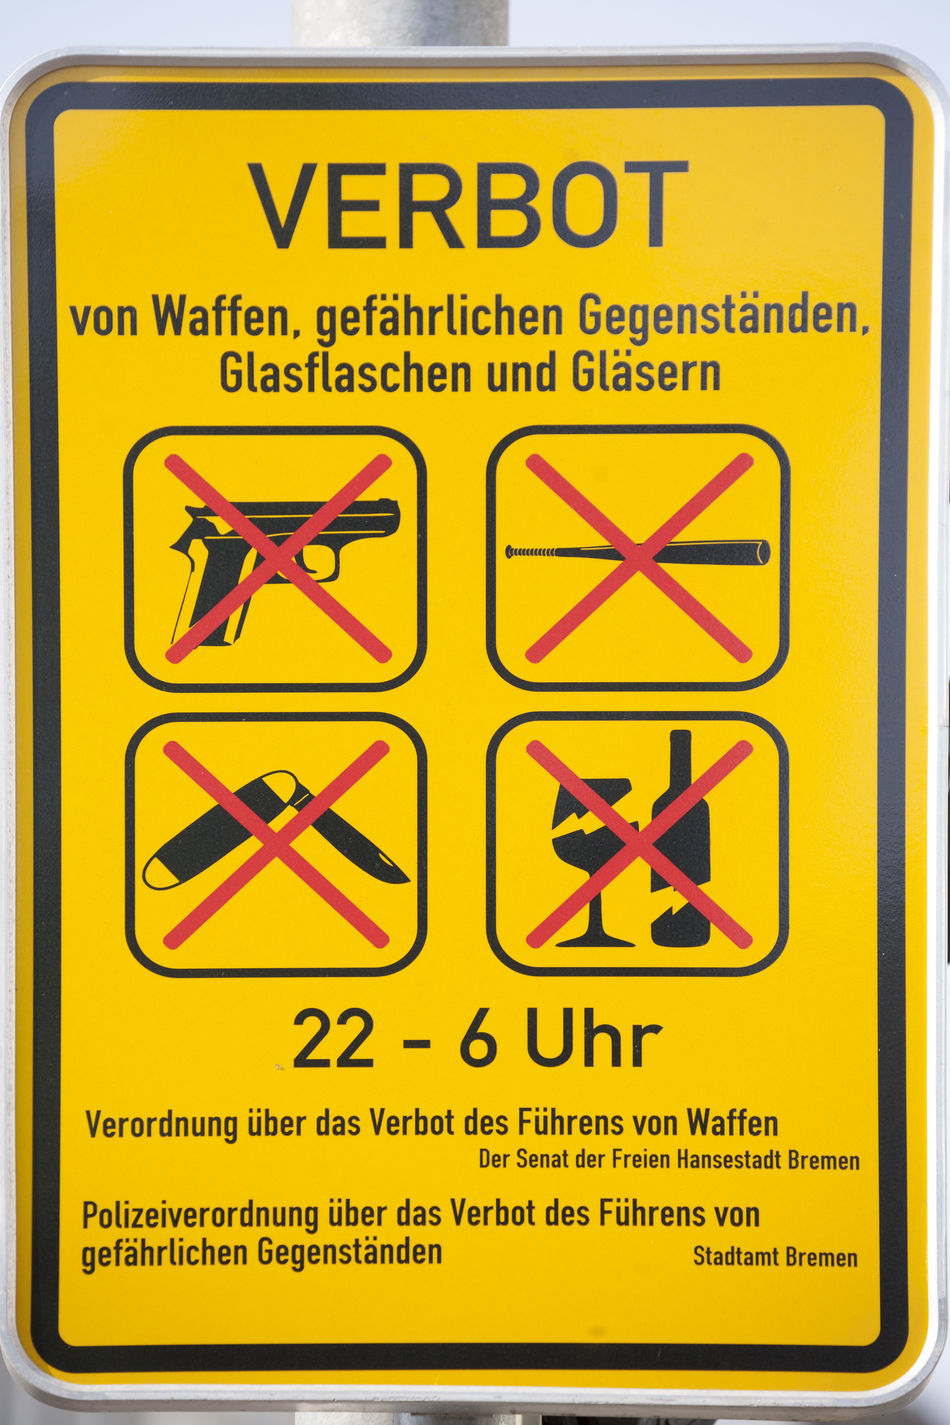 Sign Weapons Forbidden ! Forbidden No People Outdoors Permit Sign Board Text Verbotsschild Waffenverbot Waffenverbotsschil Weapons